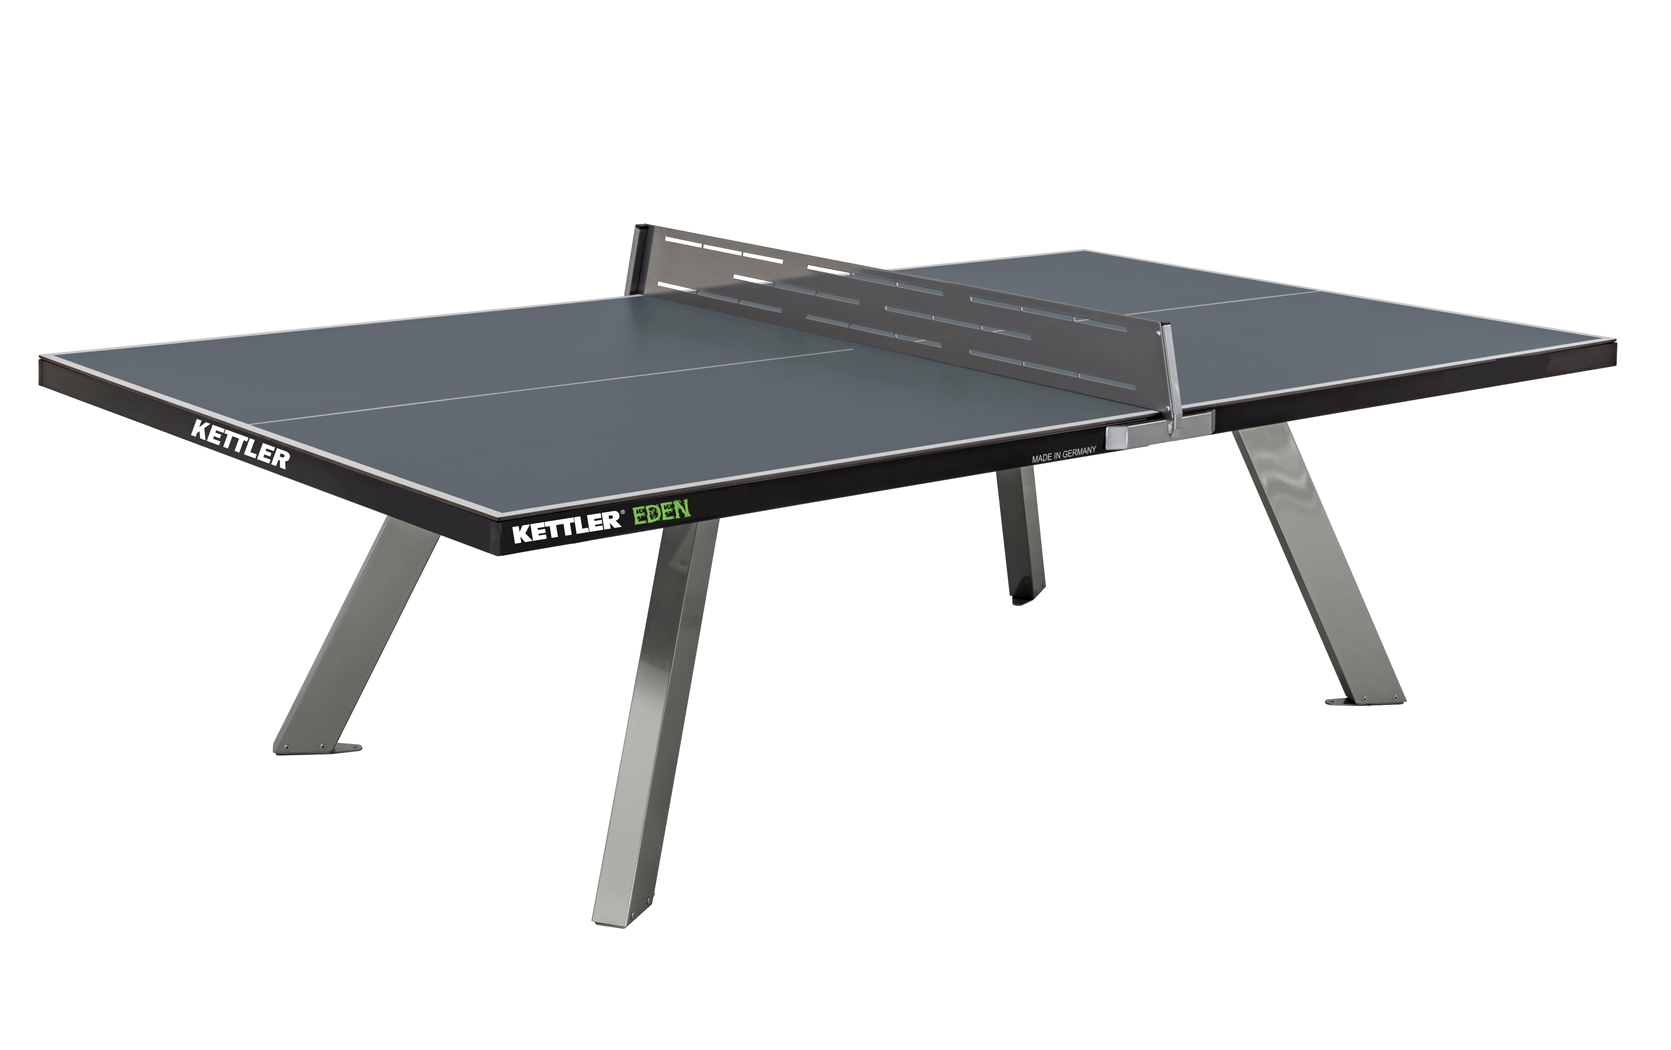 Kettler Eden Stationary Ping Pong Table